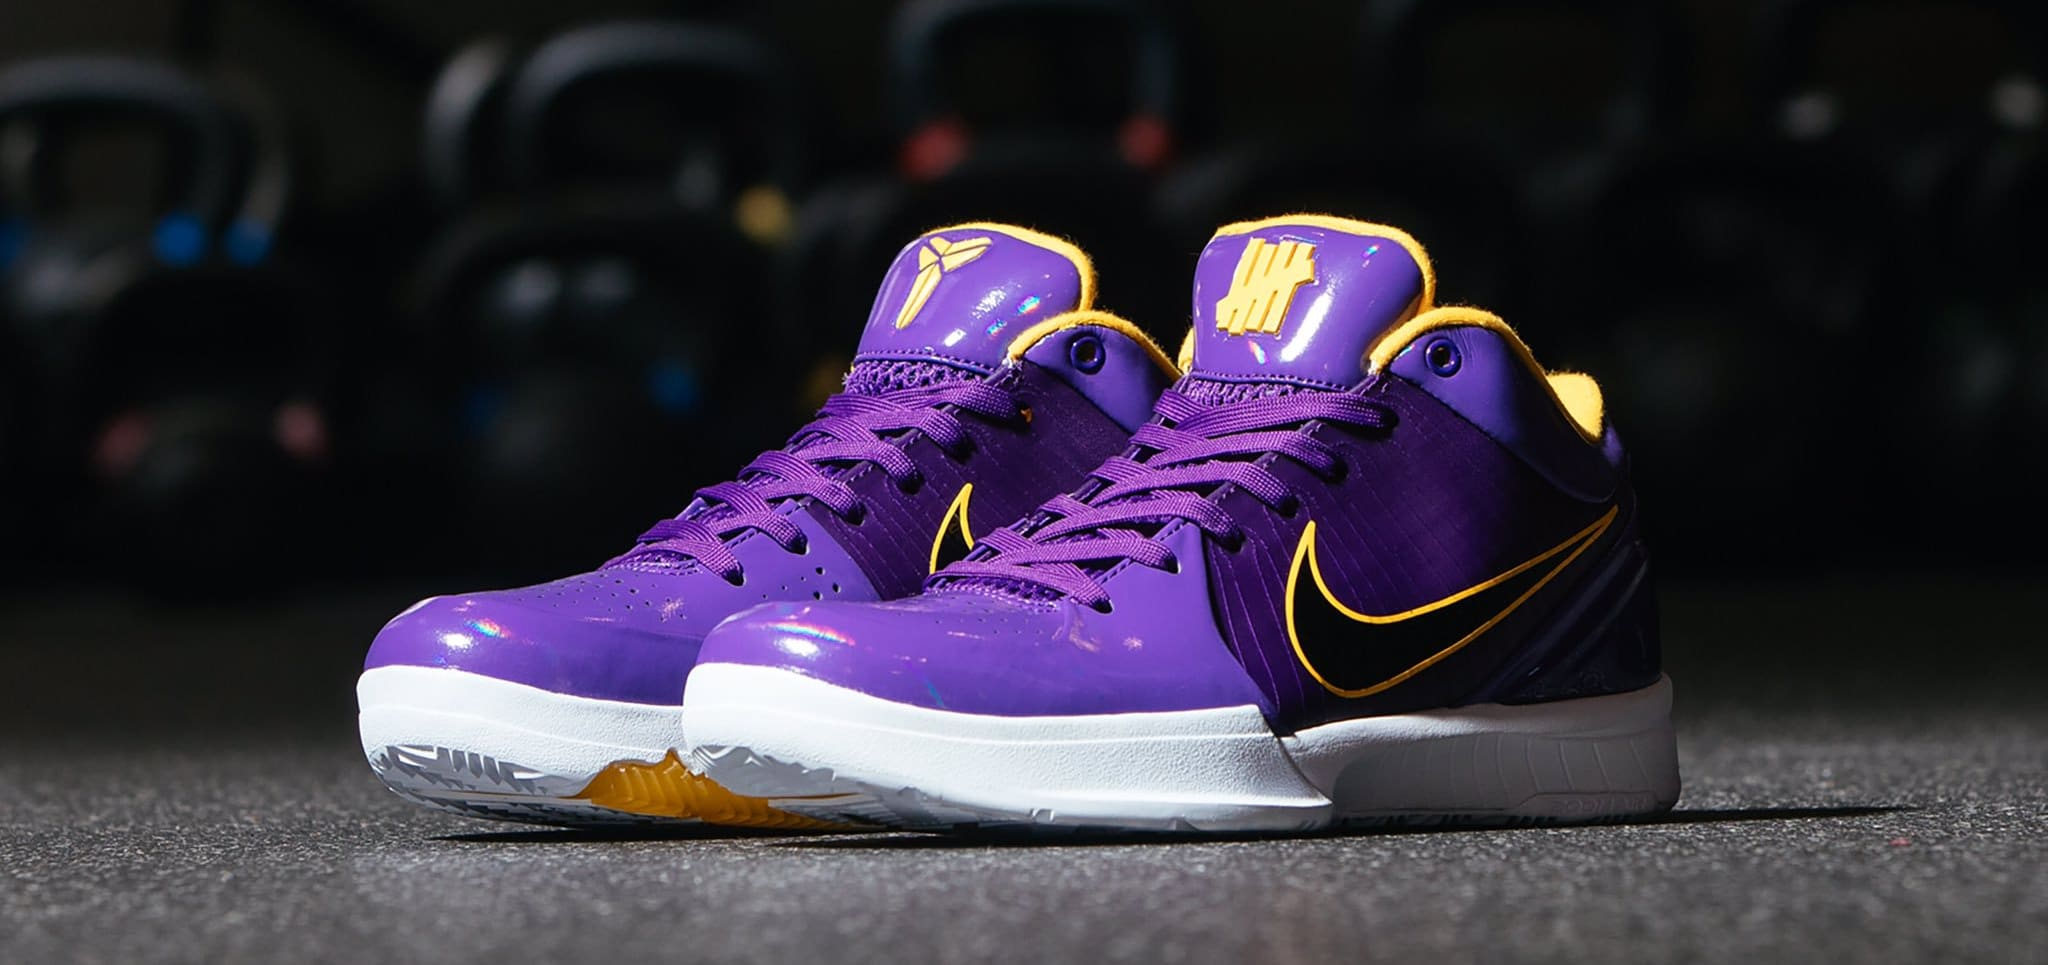 Undefeated x Nike Kobe 4 Protro 'Court Purple' (Pair)